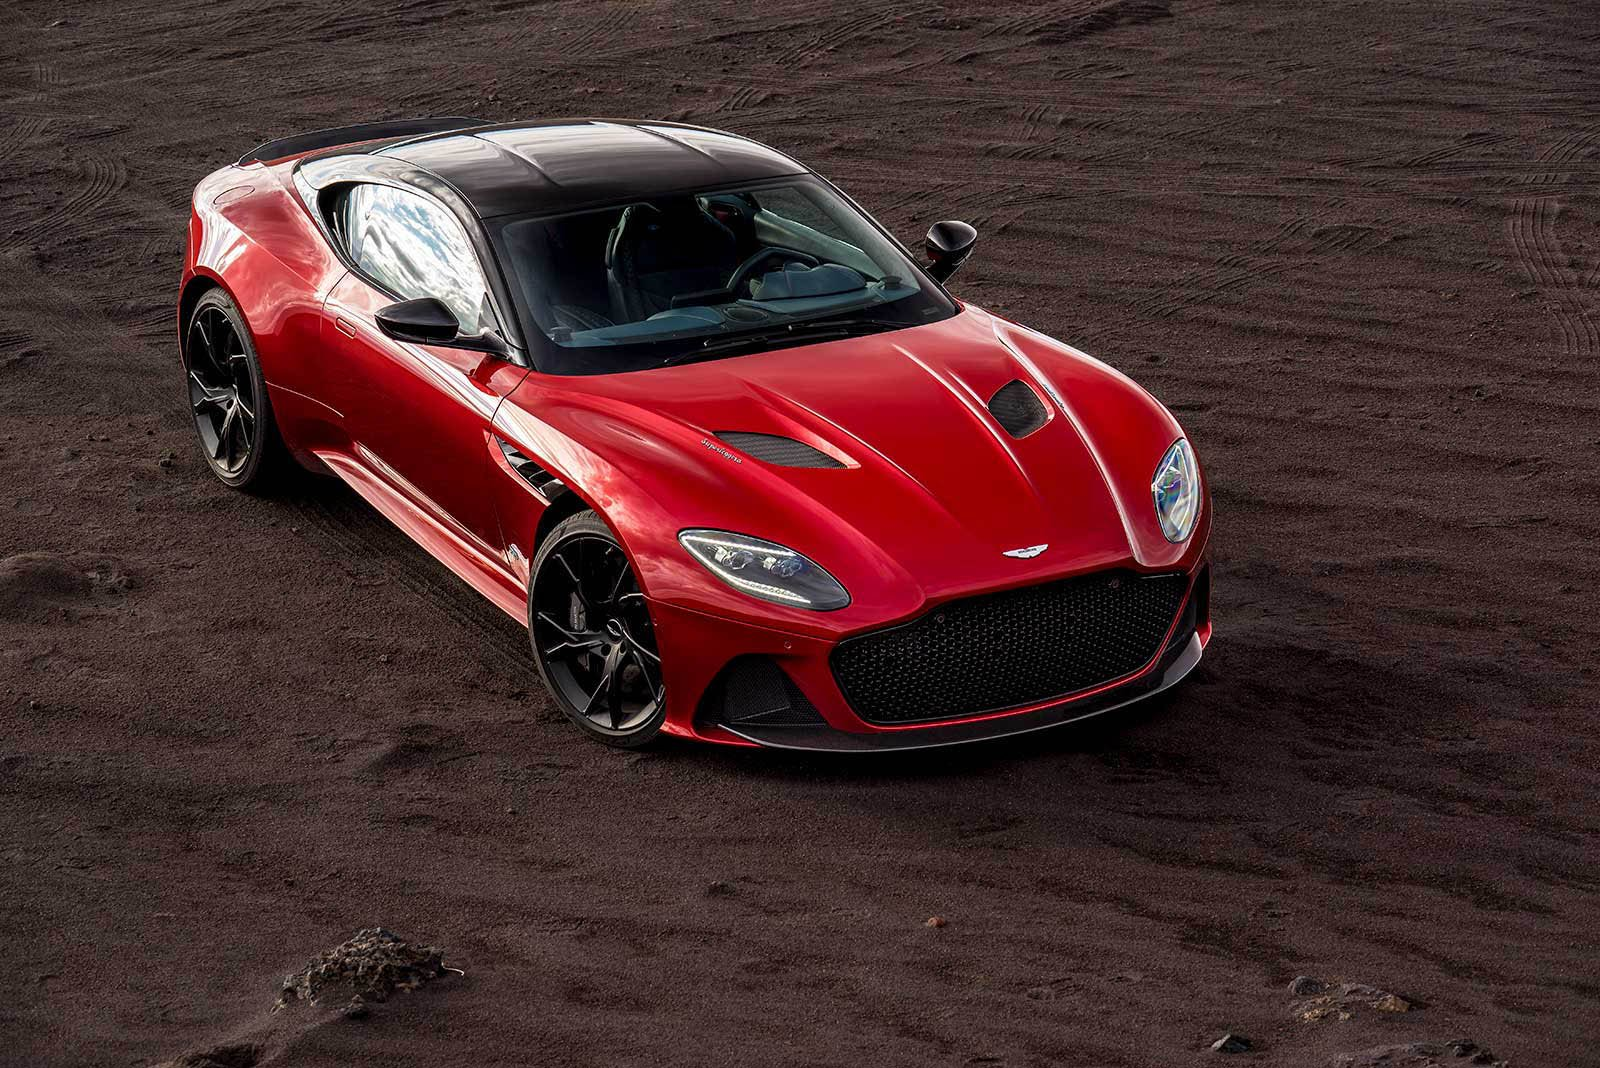 Aston Martin DBS Superleggera 2018